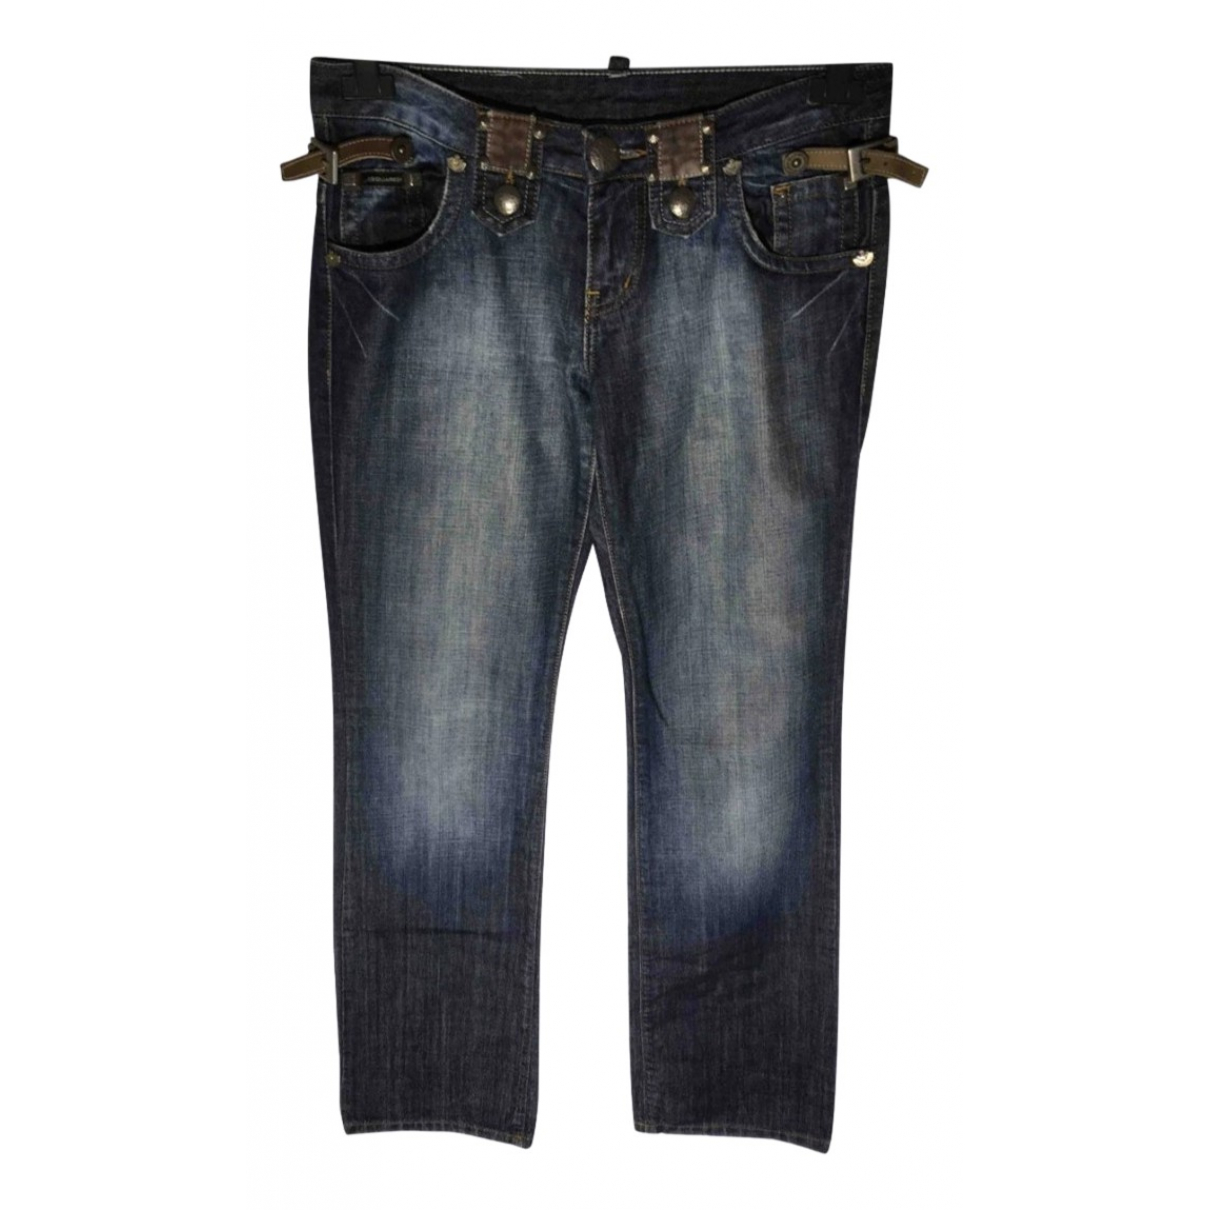 Dsquared2 \N Blue Denim - Jeans Jeans for Women 28 US